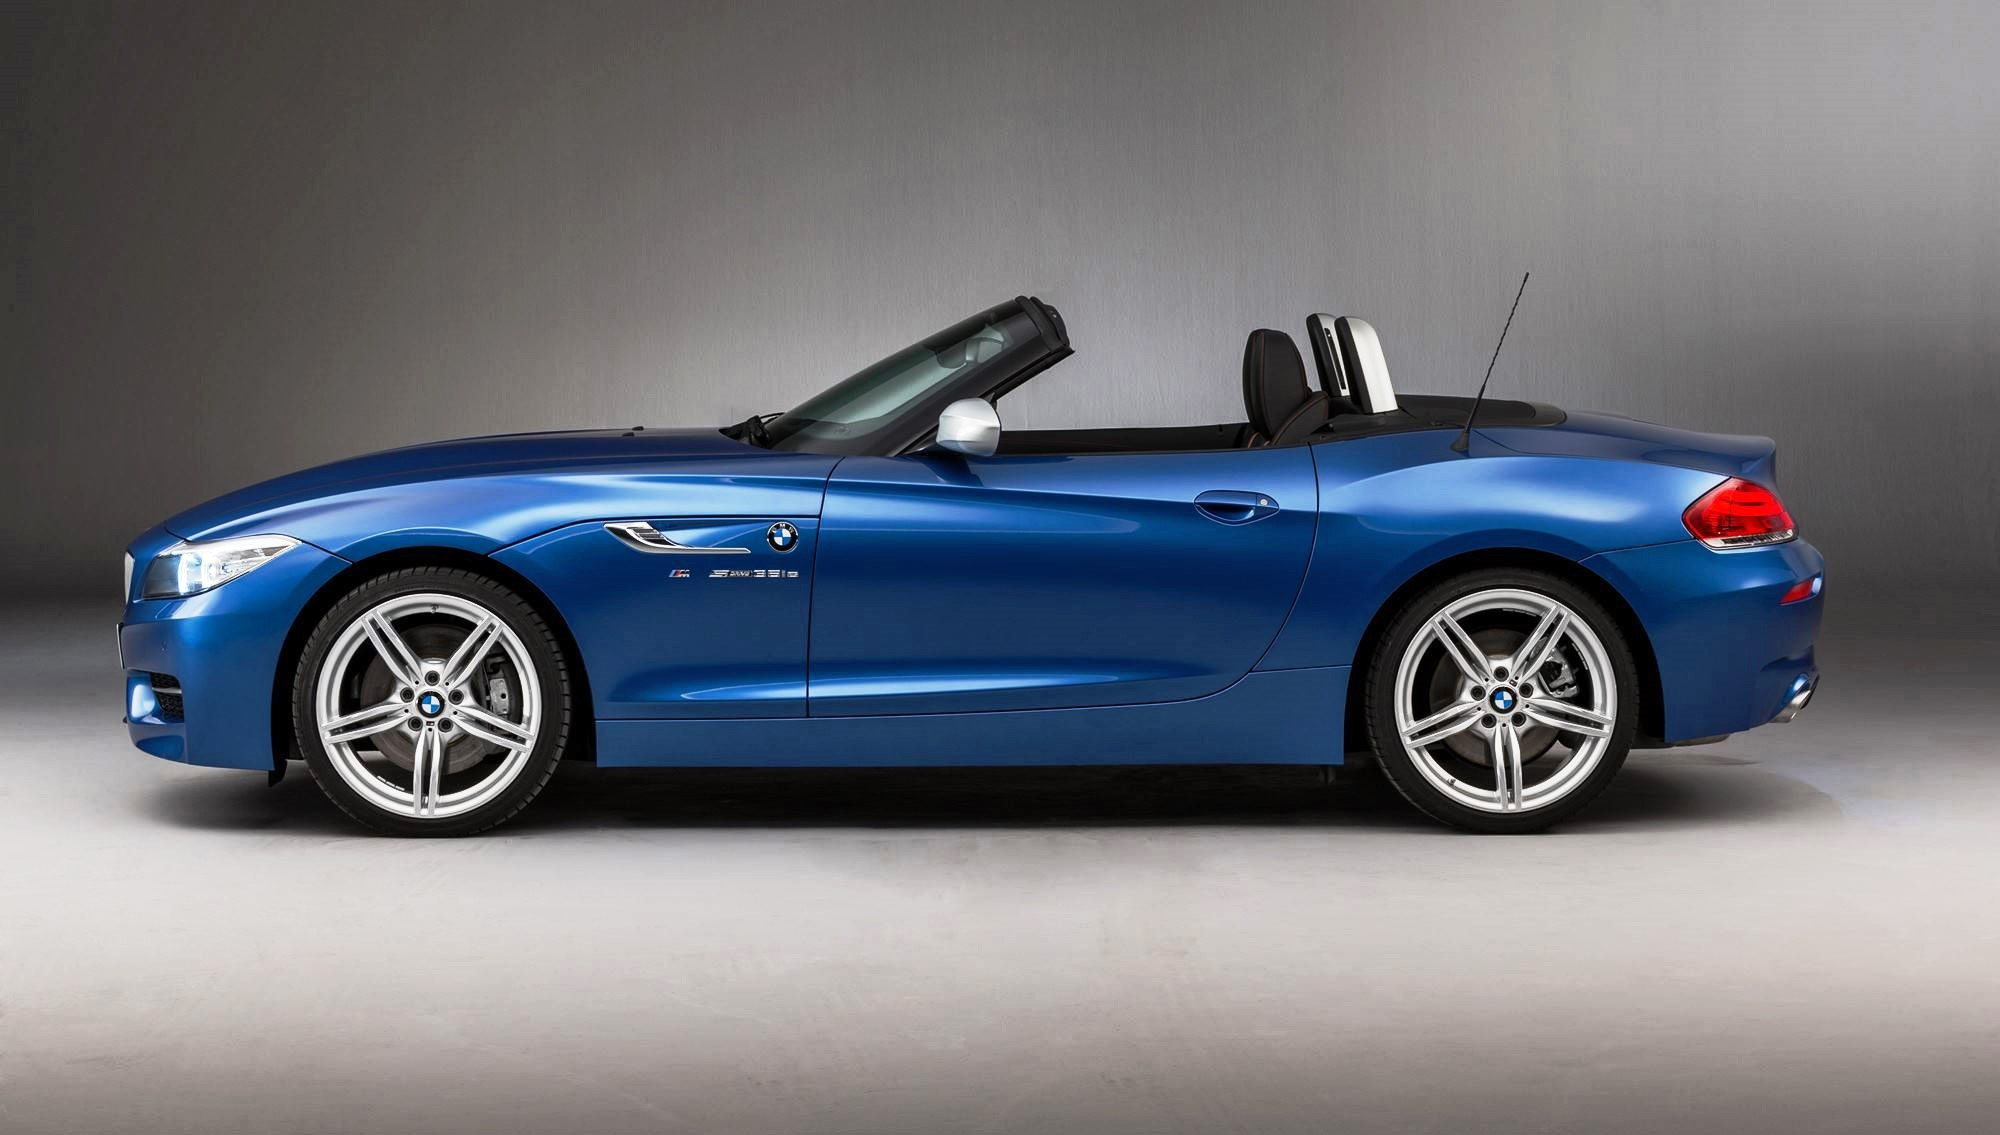 Bmw Z4 Cost 2016 Bmw Z4 Estoril Blue 2016 Bmw Z4 Estoril